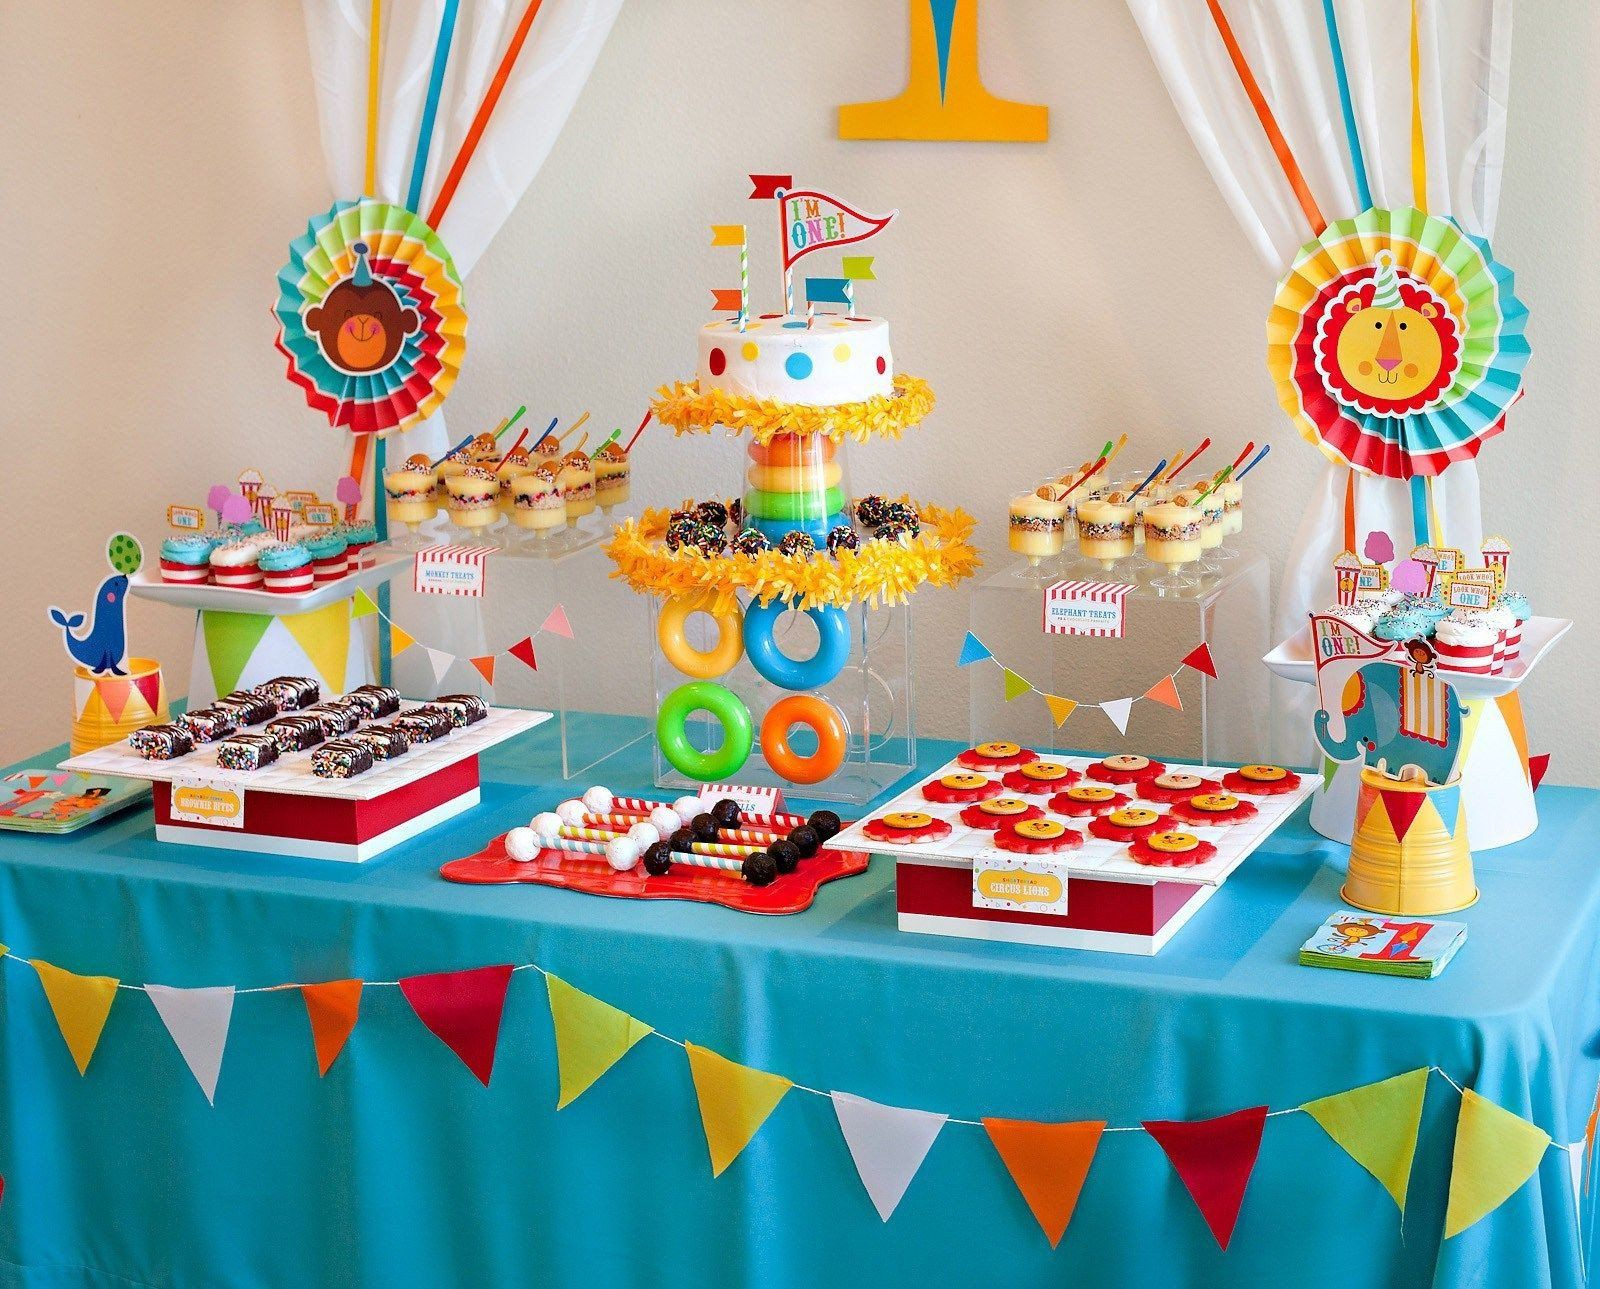 Table Decoration Ideas For Birthday Party New New First Birthday Home Decorat In 2020 Birthday Party At Home Simple Birthday Decorations 1st Birthday Party Decorations